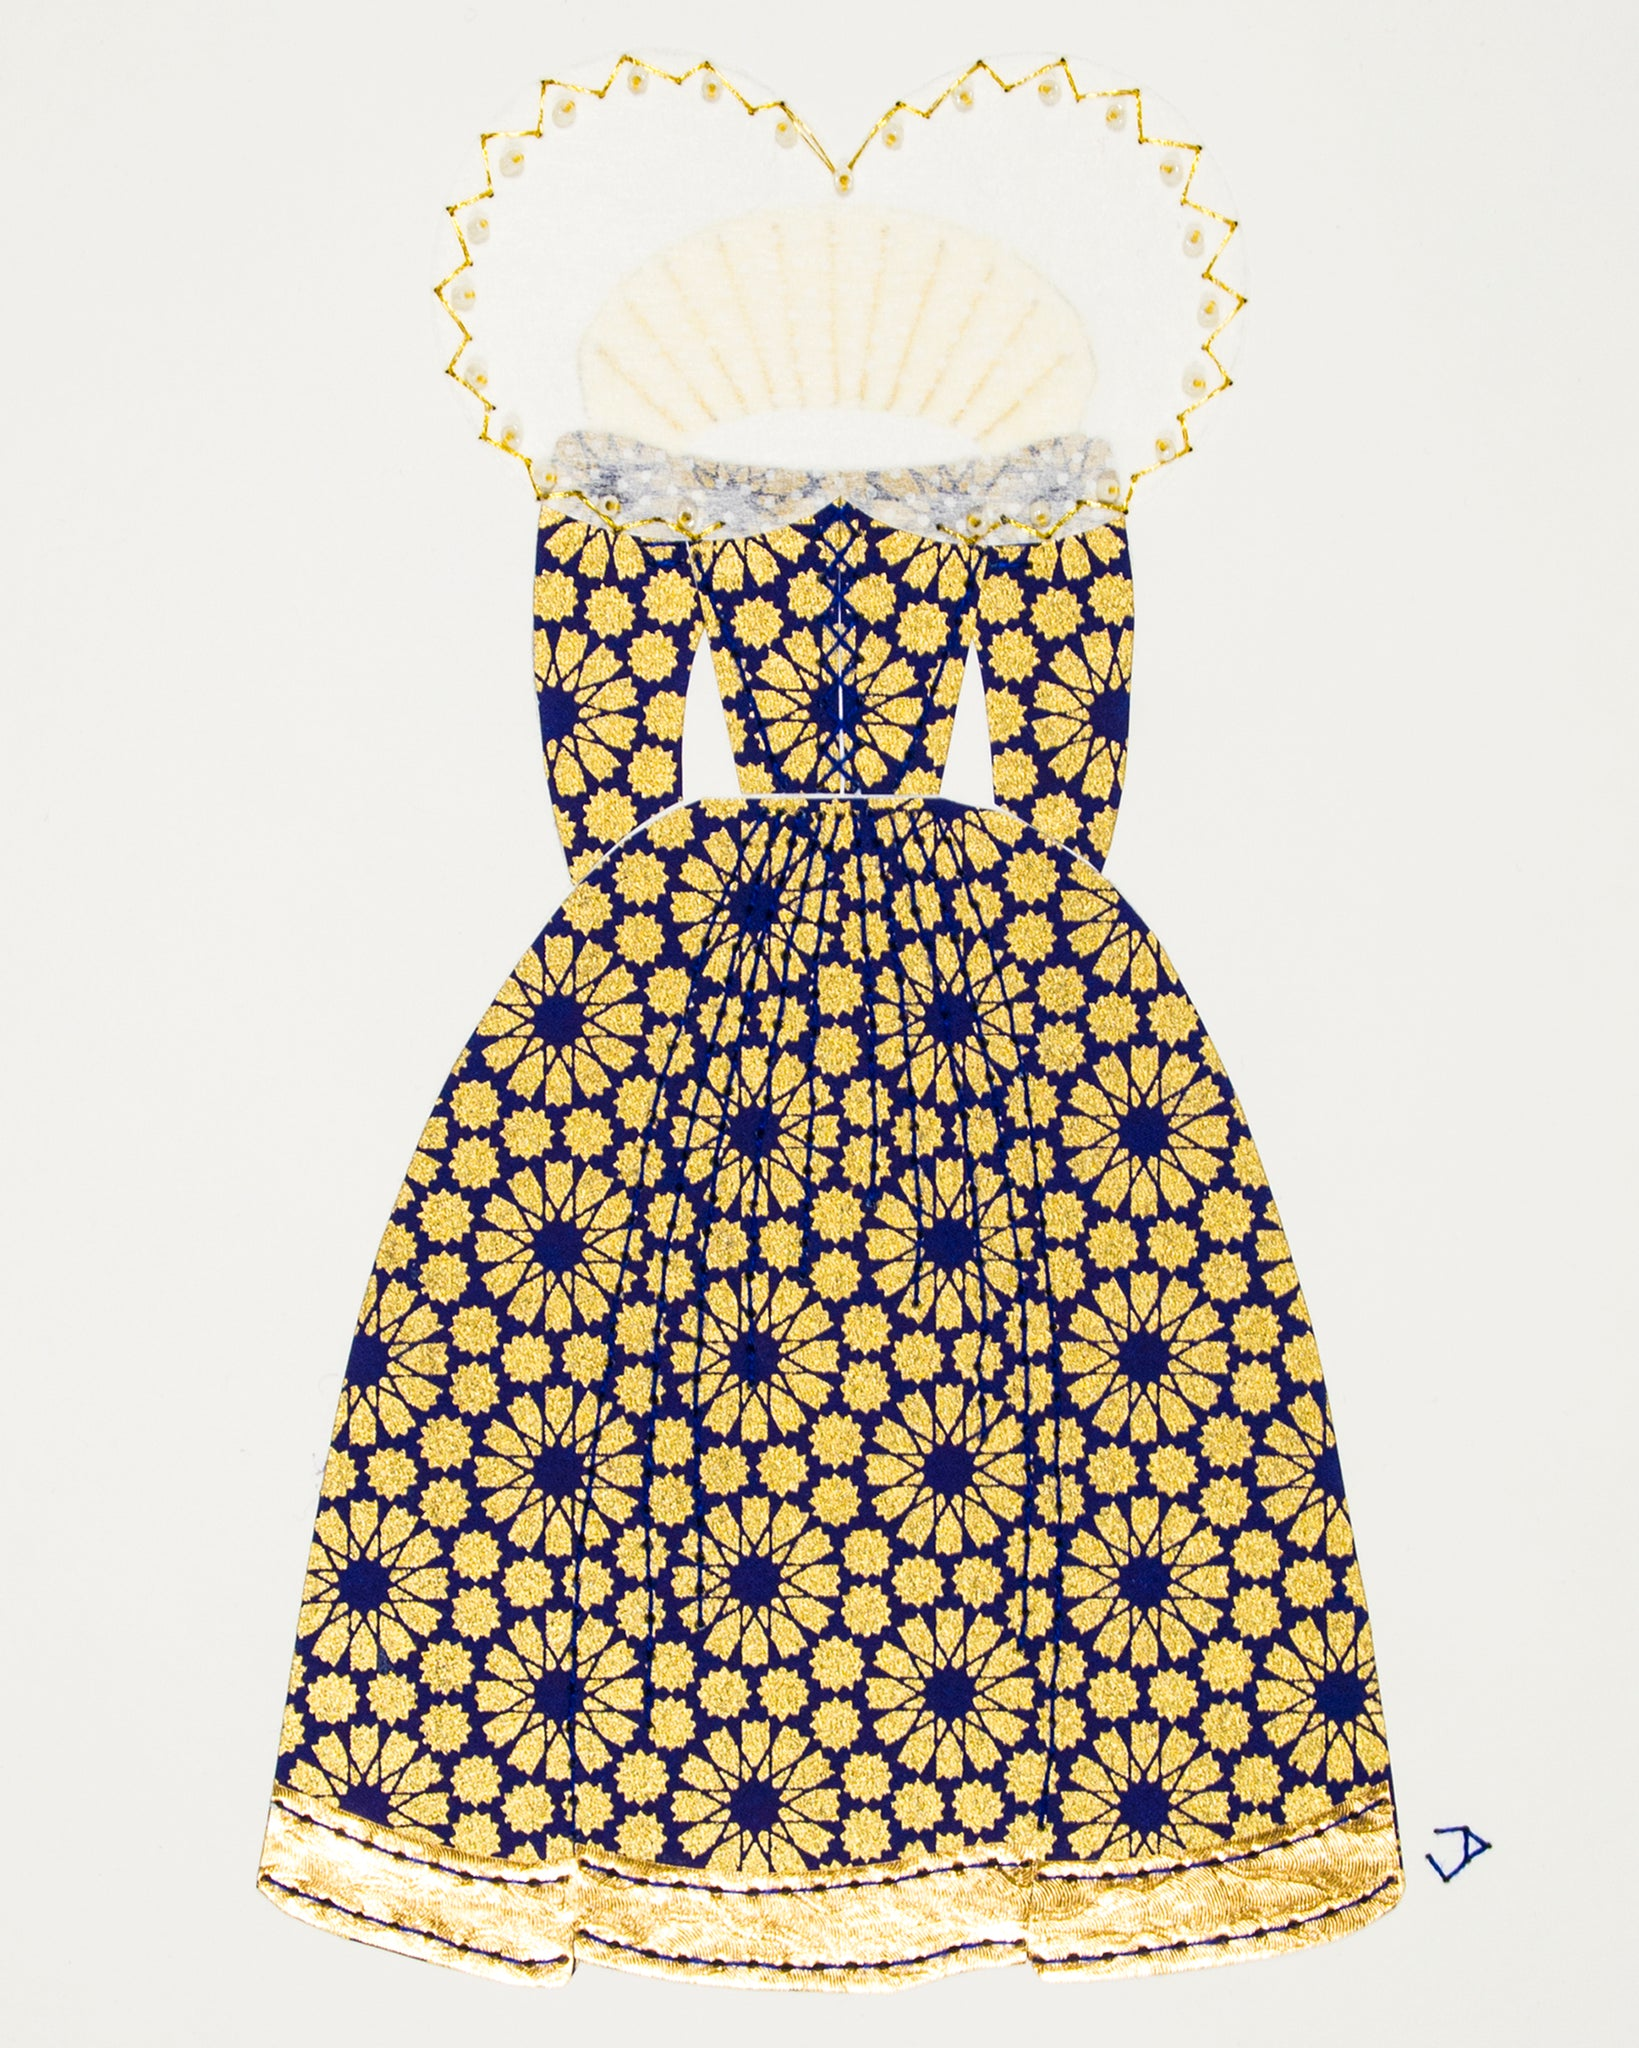 Dress #021.2: Queen Elizabeth I gown in blue and gold: rear view. 2017